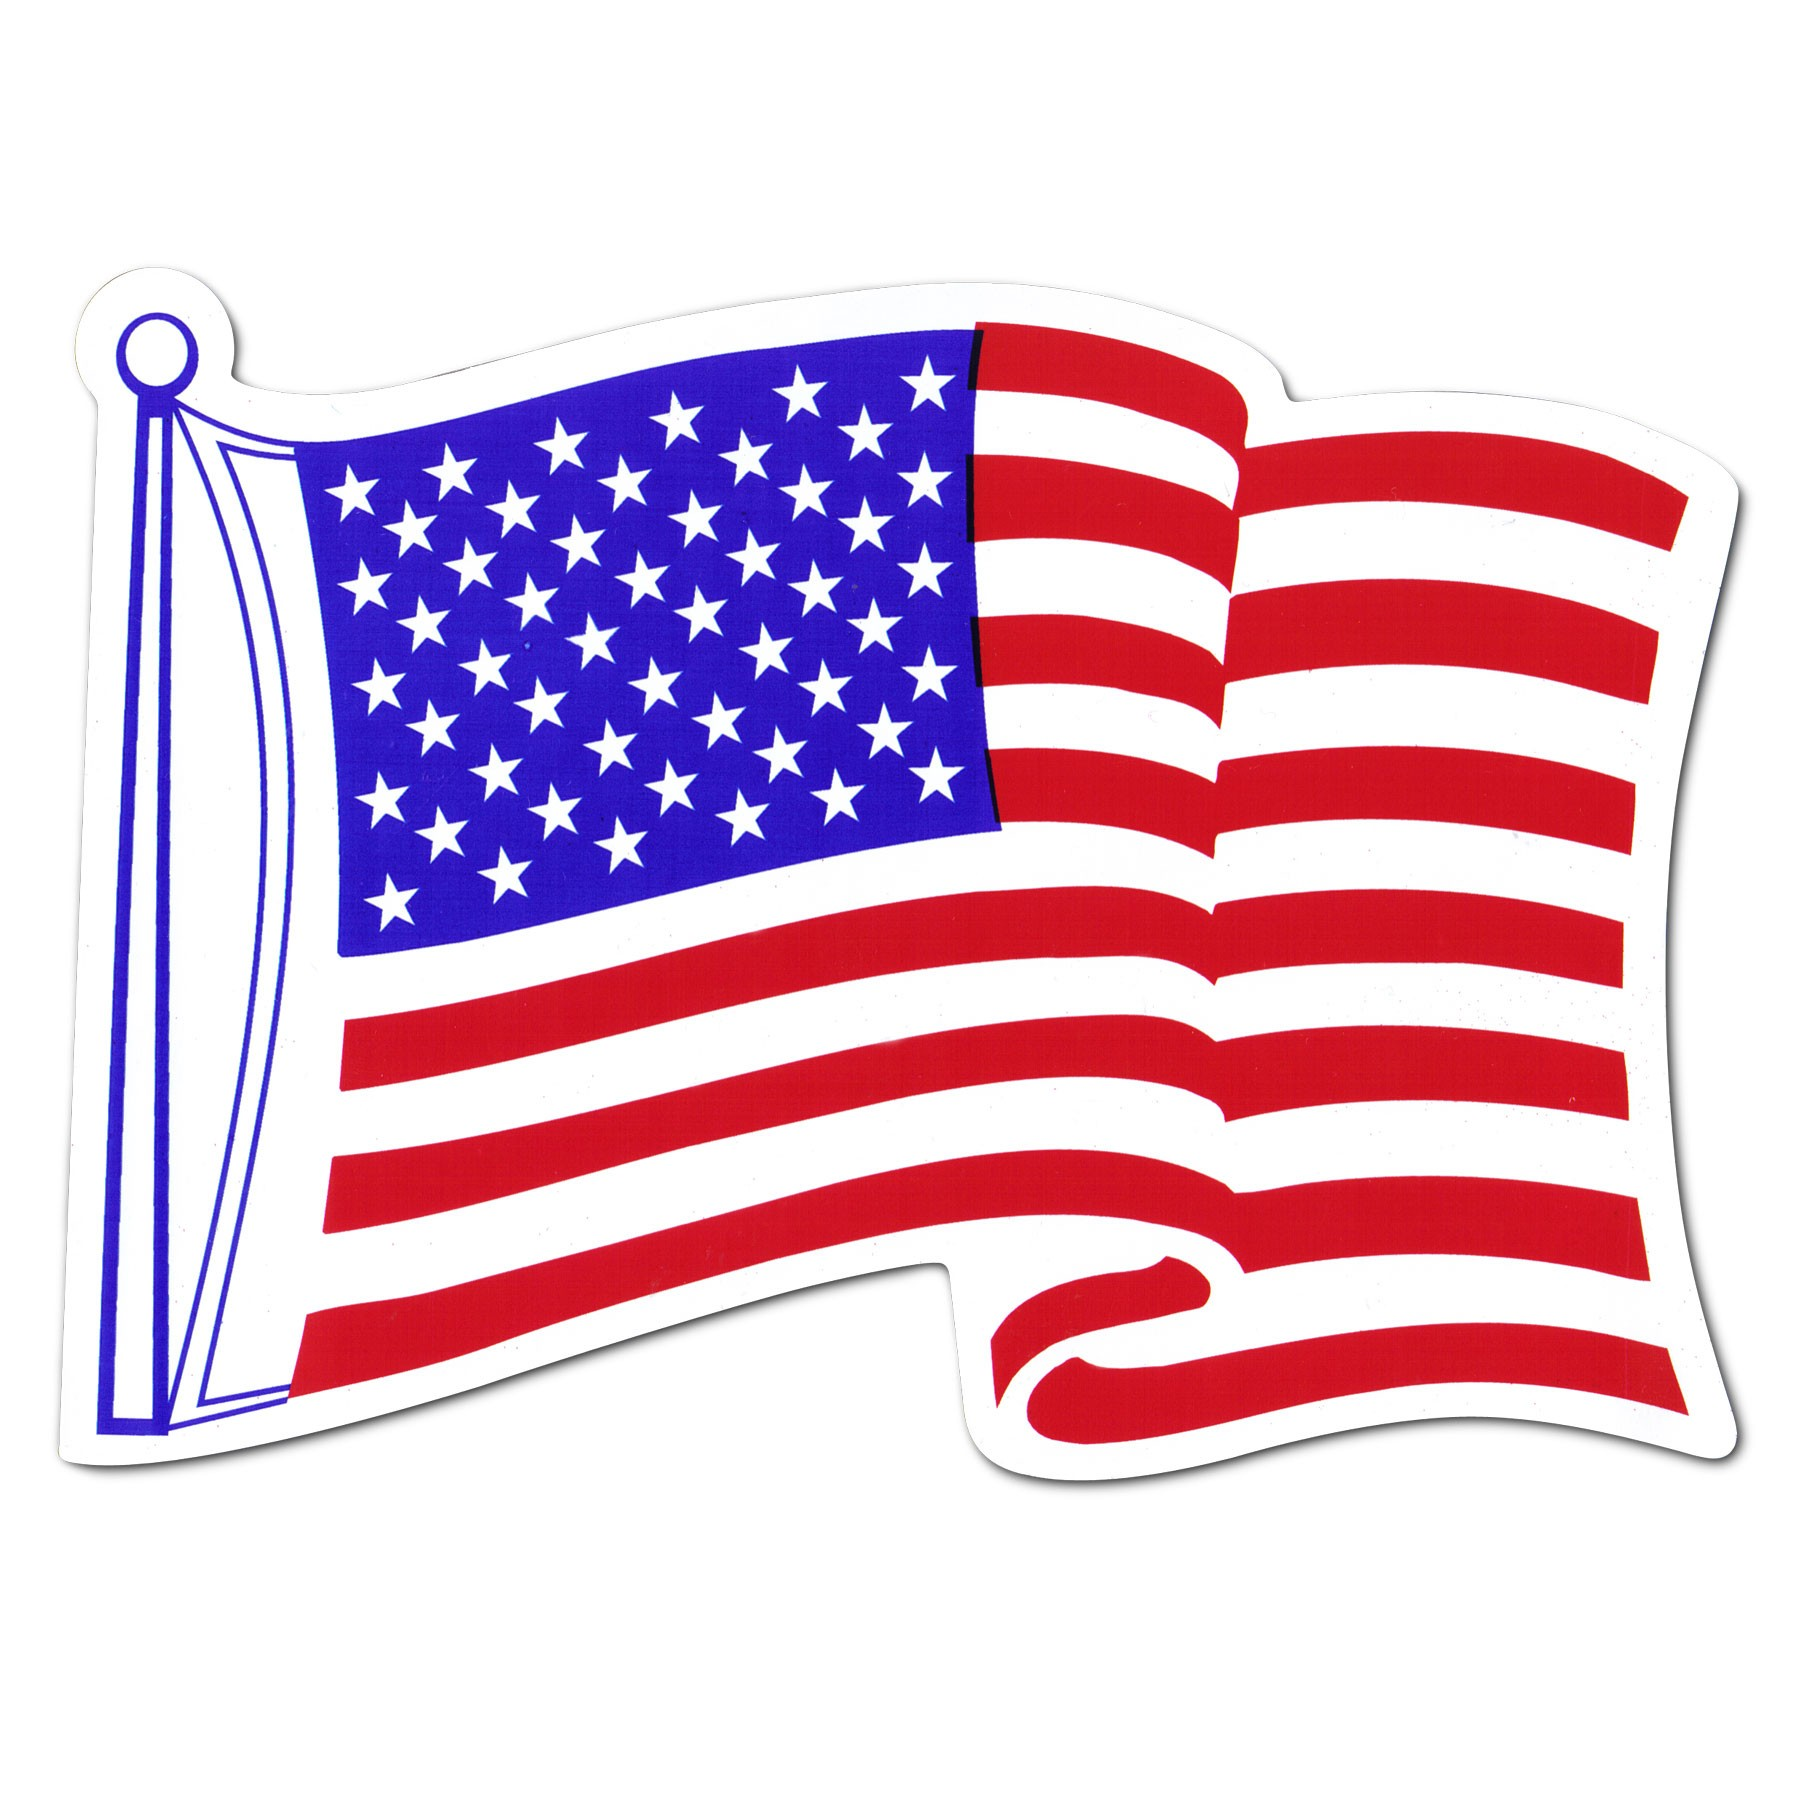 state flag clipart at getdrawings com free for personal use state rh getdrawings com flag day clipart free flag clipart free